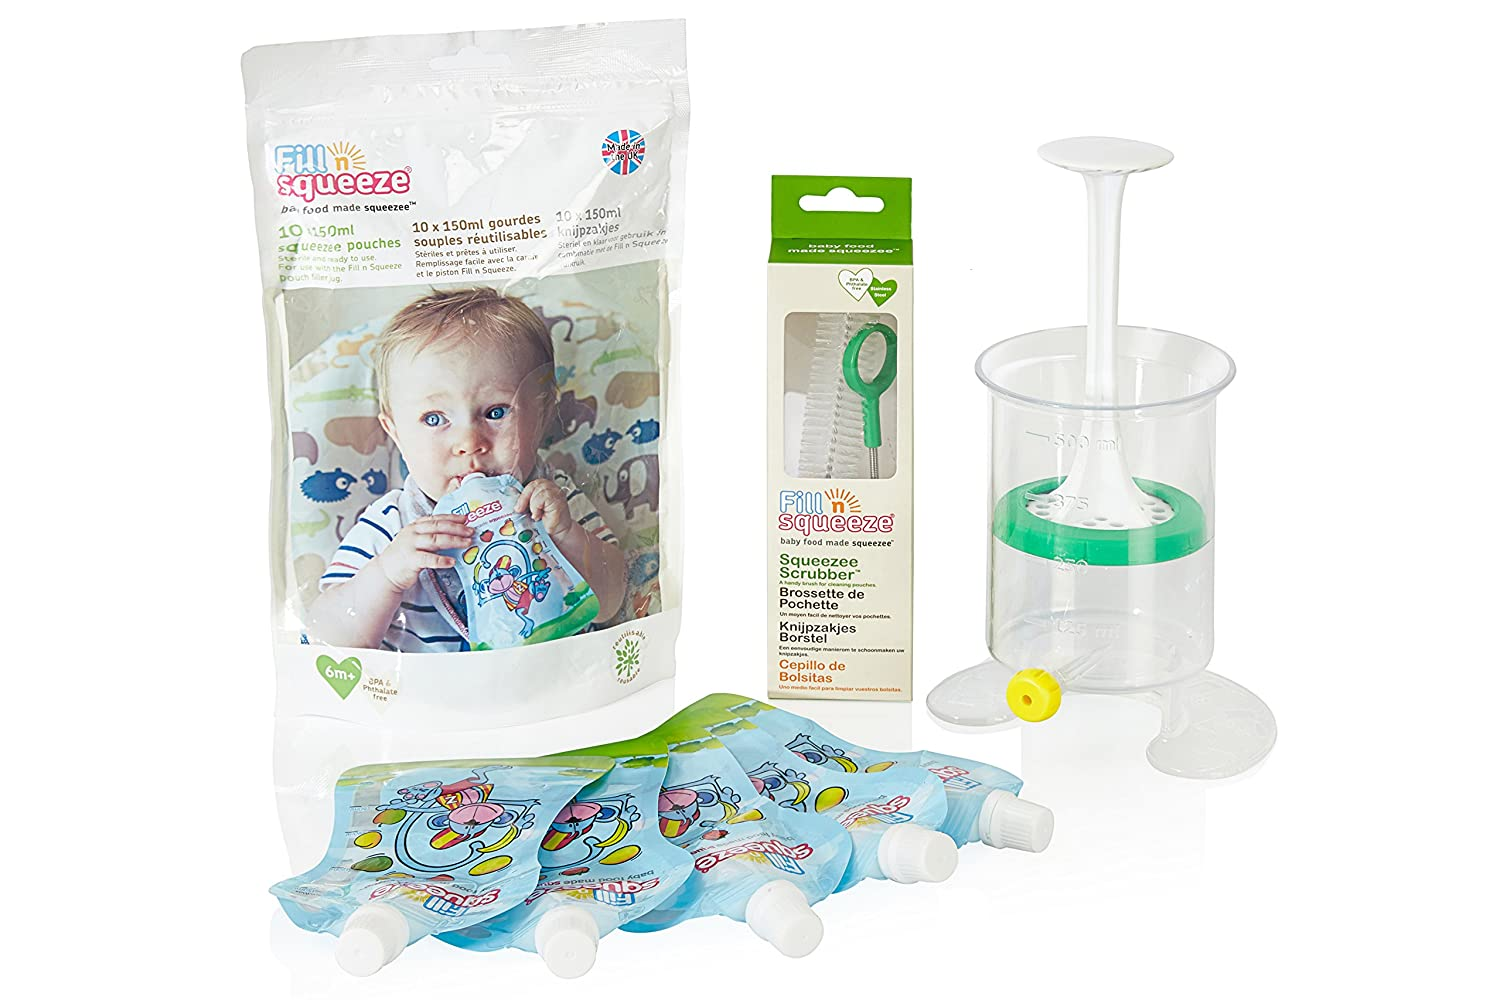 Fill n Squeeze Weaning Starter Kit - Reusable Pouches, Cleaning Brush, Refills for Homemade Purees, Smoothies, Yogurts and Baby Food for all Stages of Infant Feeding (Value Pack) Fill n Squeeze Ltd